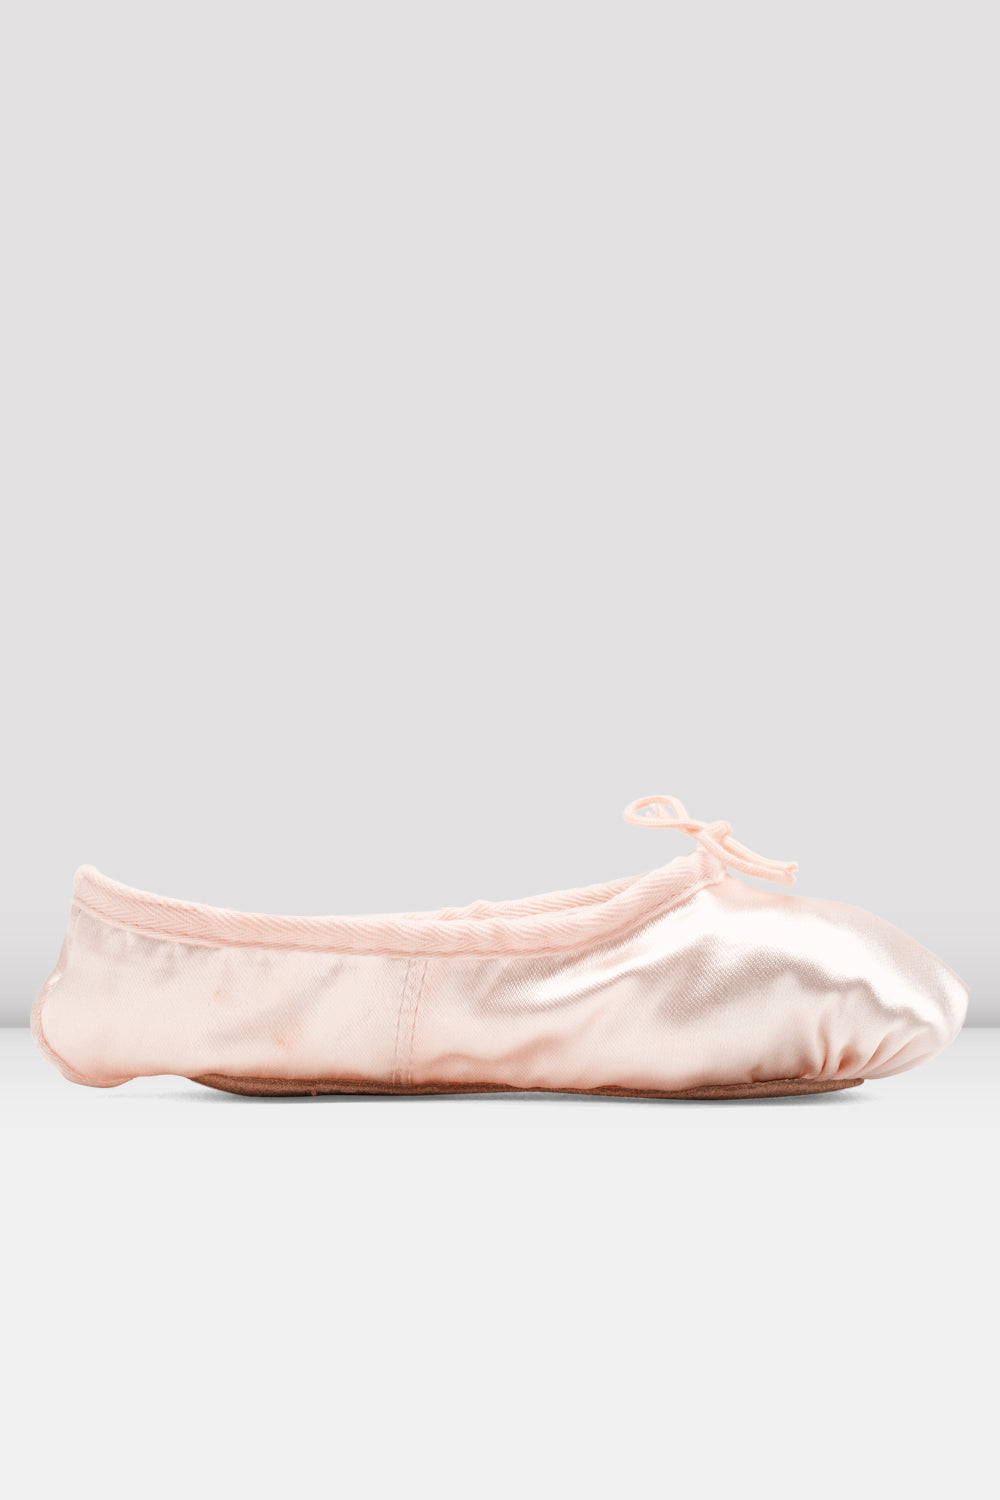 Girls Debut Satin Ballet Shoes